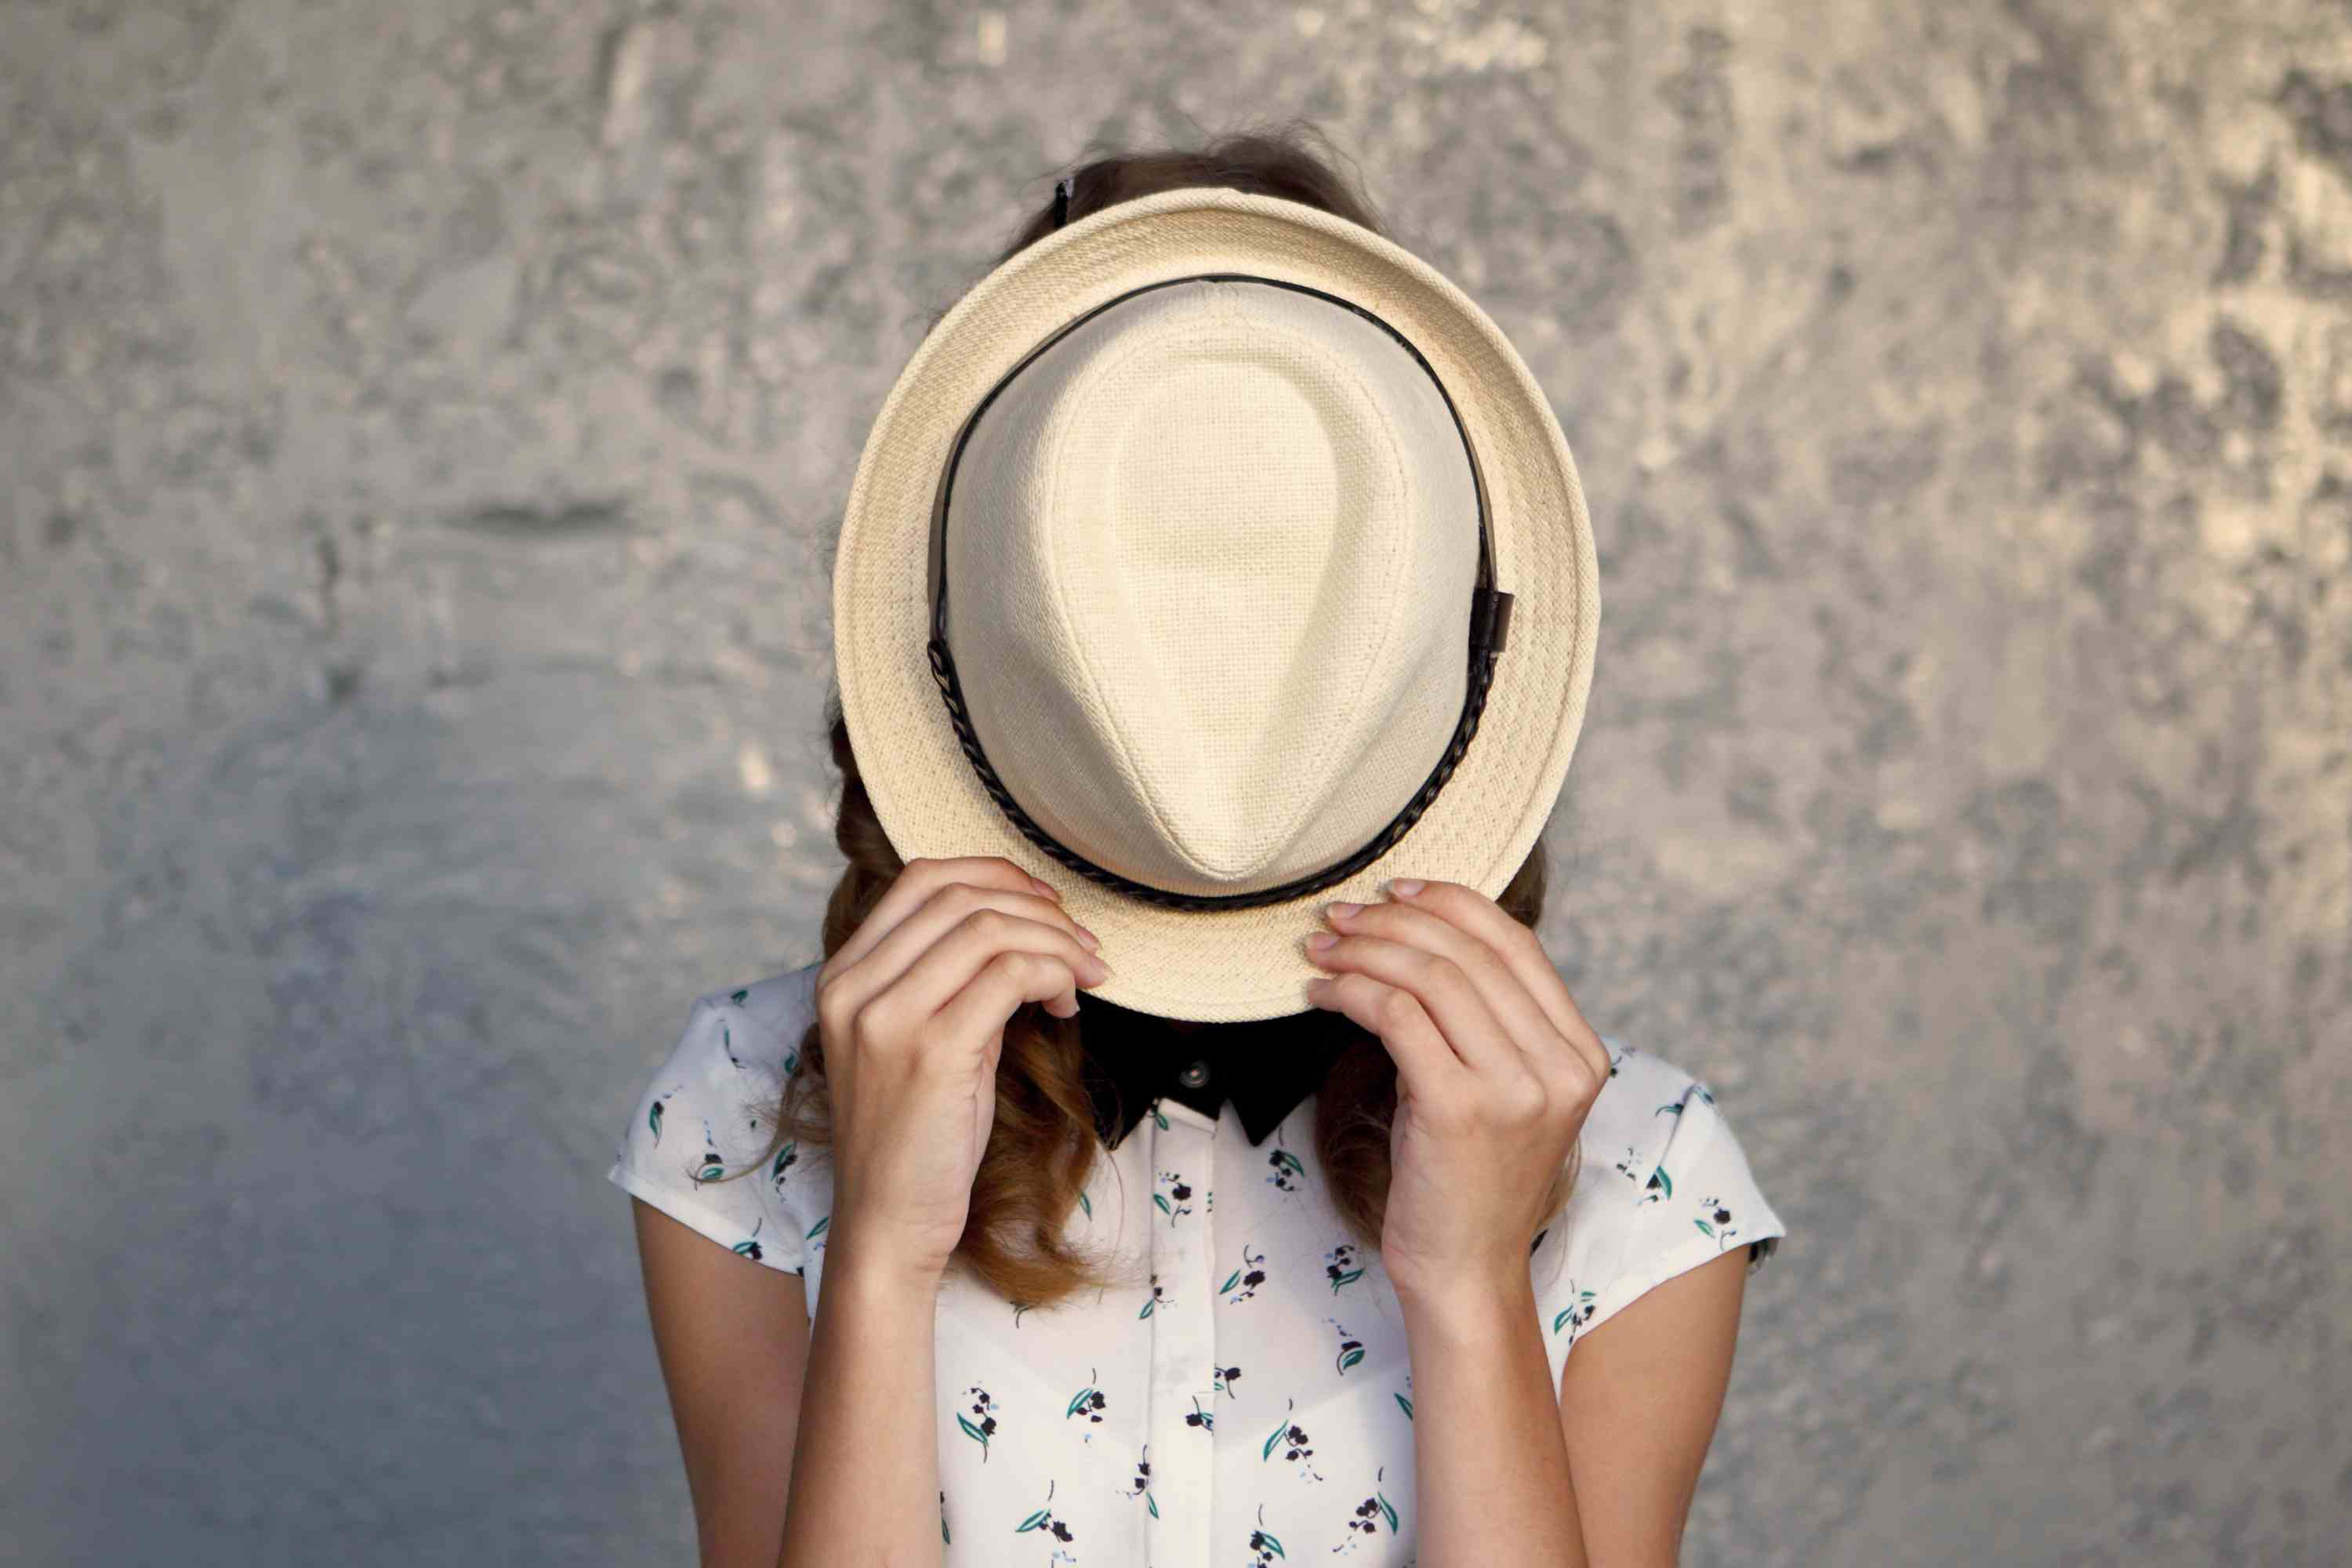 Person with hat in front of their face